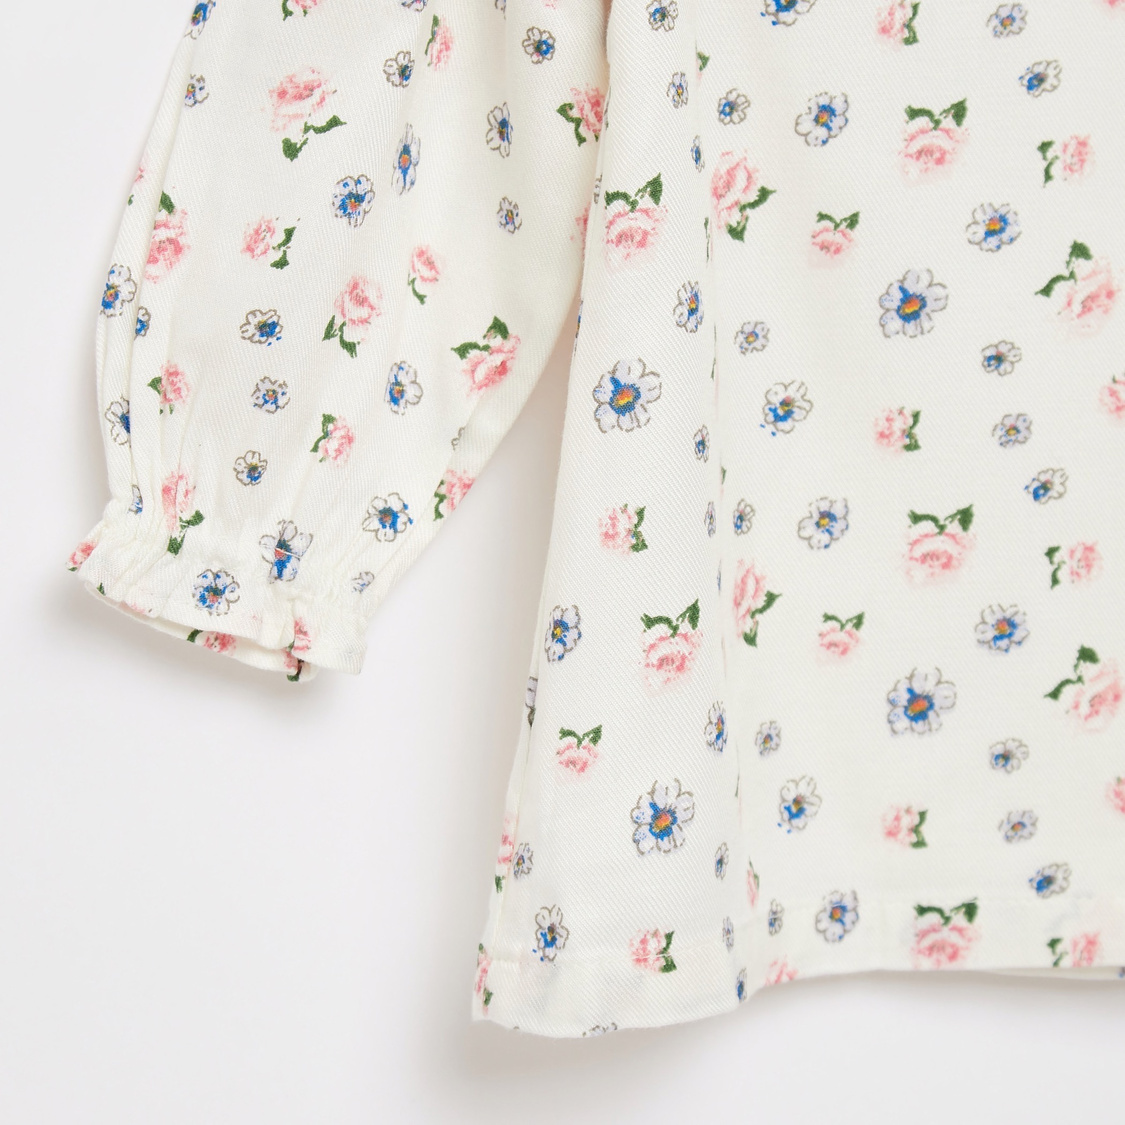 All-Over Floral Print Top with Long Sleeves and Frill Detail